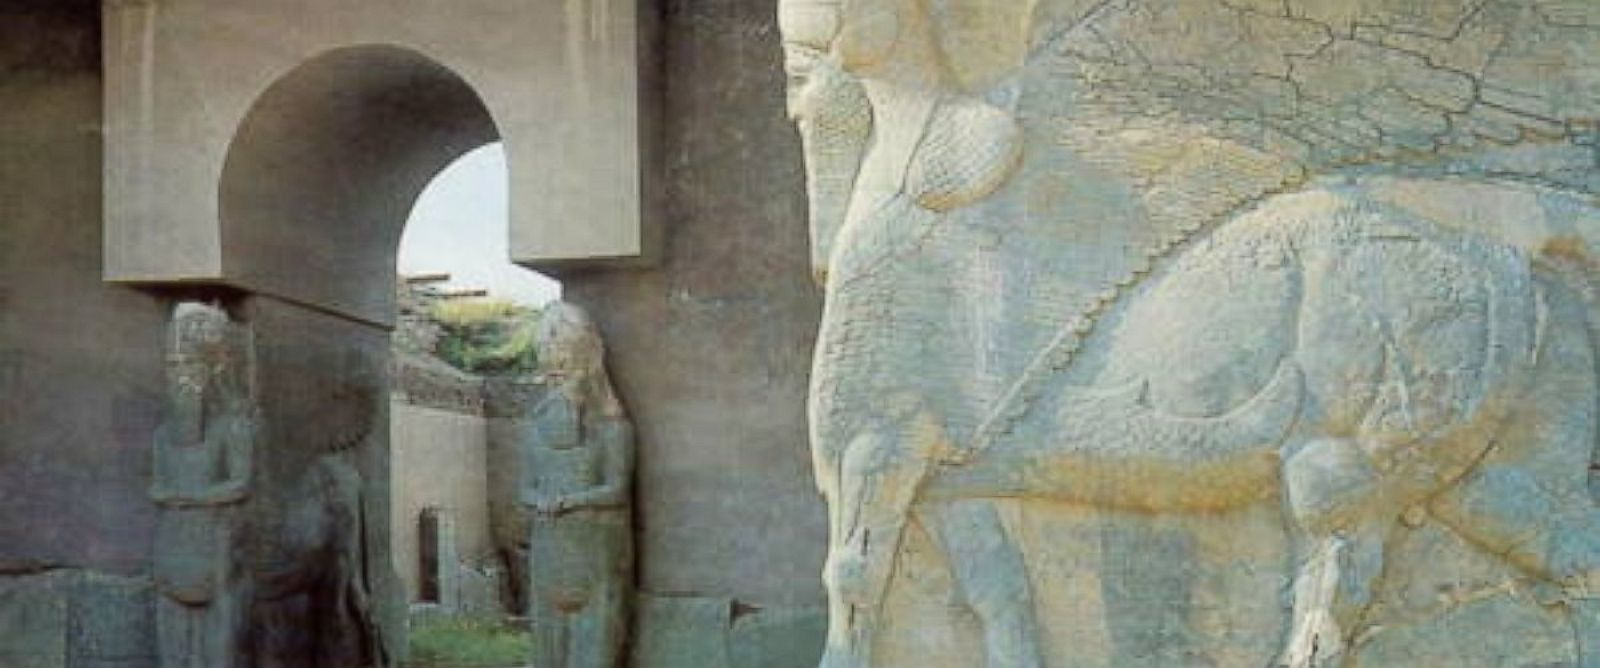 PHOTO: UNESCO provided this photo showing Nimrud Lamassus at the North West Palace of Ashurnasirpal, Iraq.